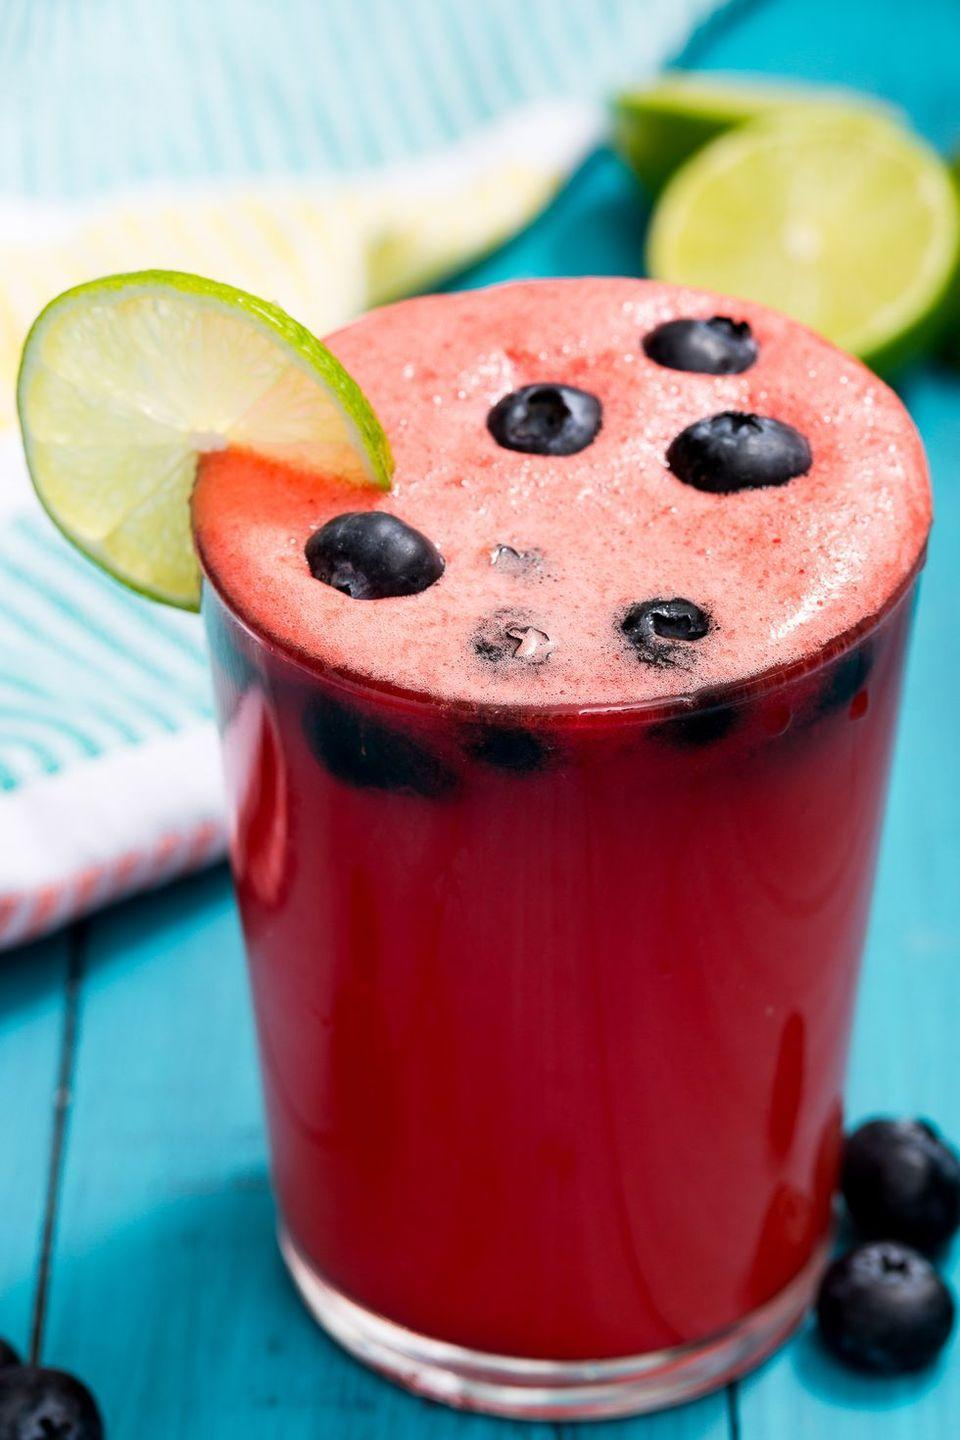 <p>Sangria can often times be over sweet or be an odd mix of too many fruit flavours. We believe this refreshing Watermelon Sangria is the perfect way to simplify this summery cocktail into something truly delicious.</p><p>Get the Watermelon Sangria recipe.</p>